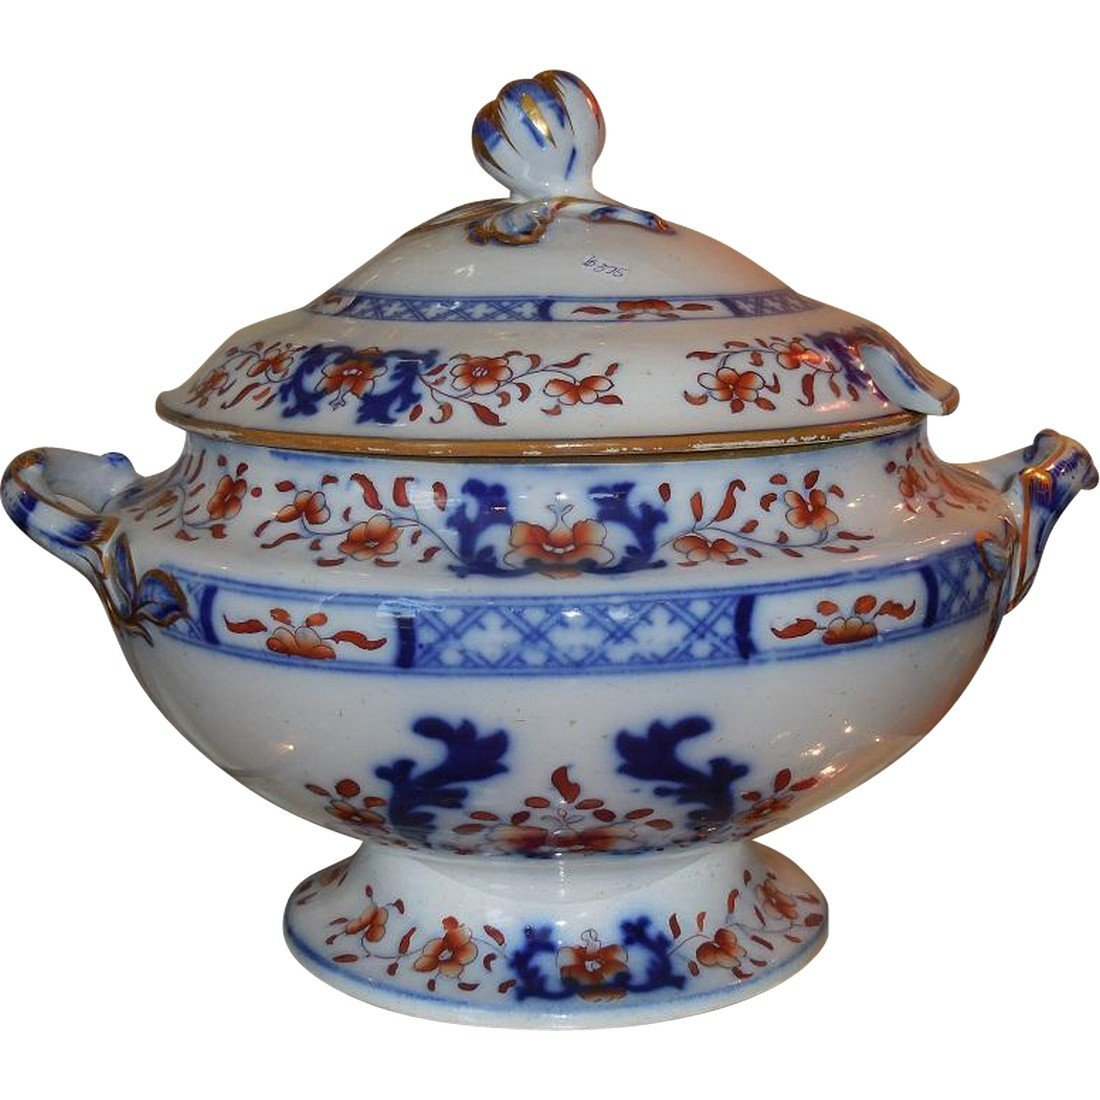 Huge Antique Early 19th C English Imari Pottery